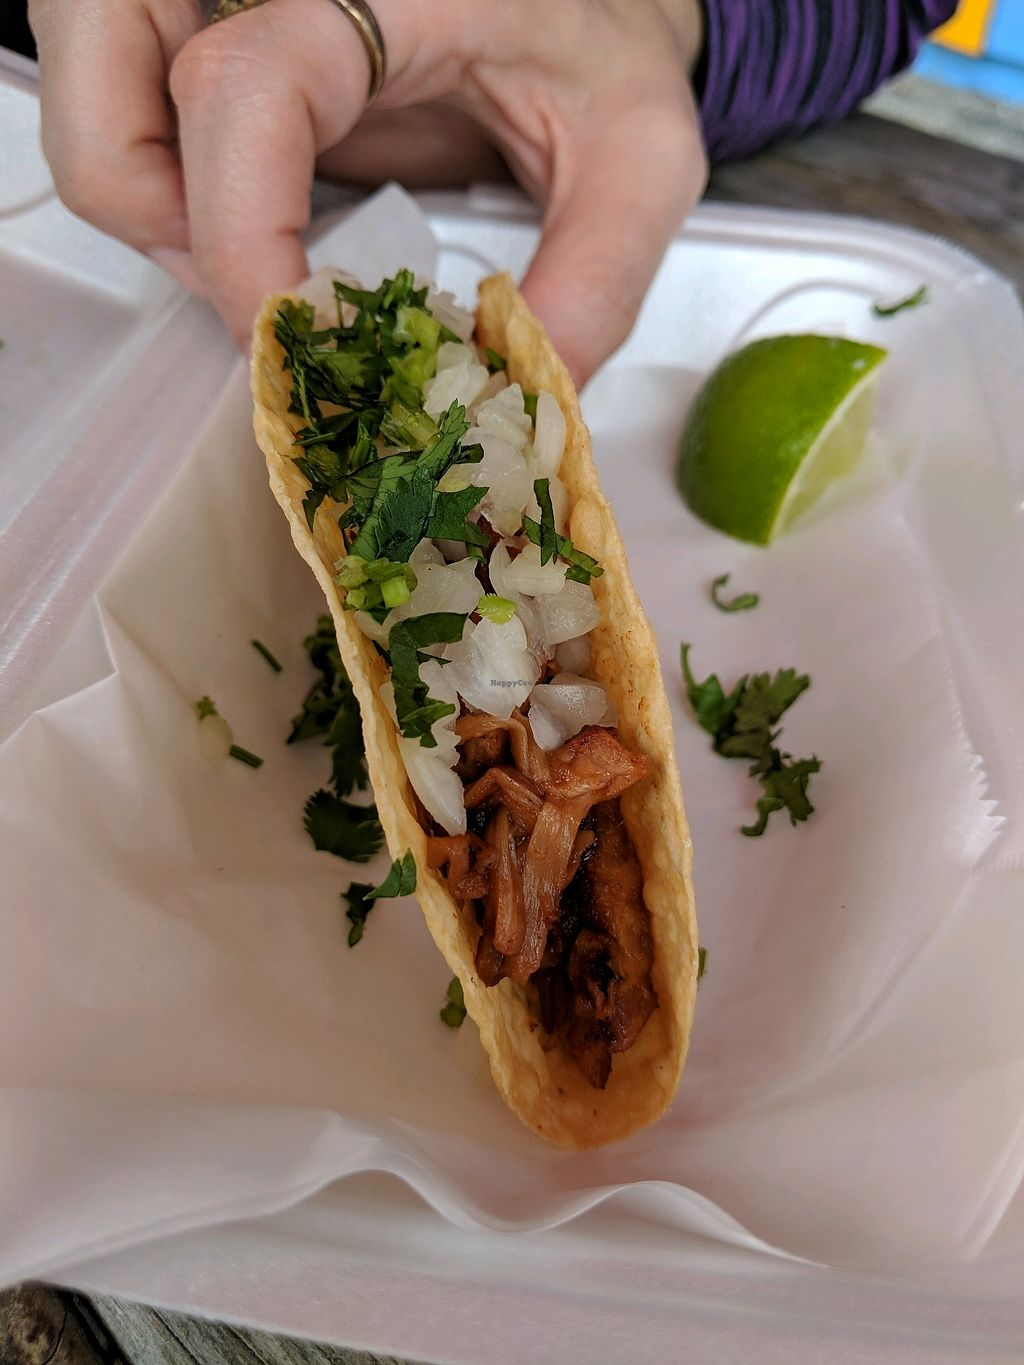 """Photo of Nacho Taco  by <a href=""""/members/profile/BryanRoseberry"""">BryanRoseberry</a> <br/>BBQ Jackfruit taco <br/> February 28, 2018  - <a href='/contact/abuse/image/108088/364756'>Report</a>"""